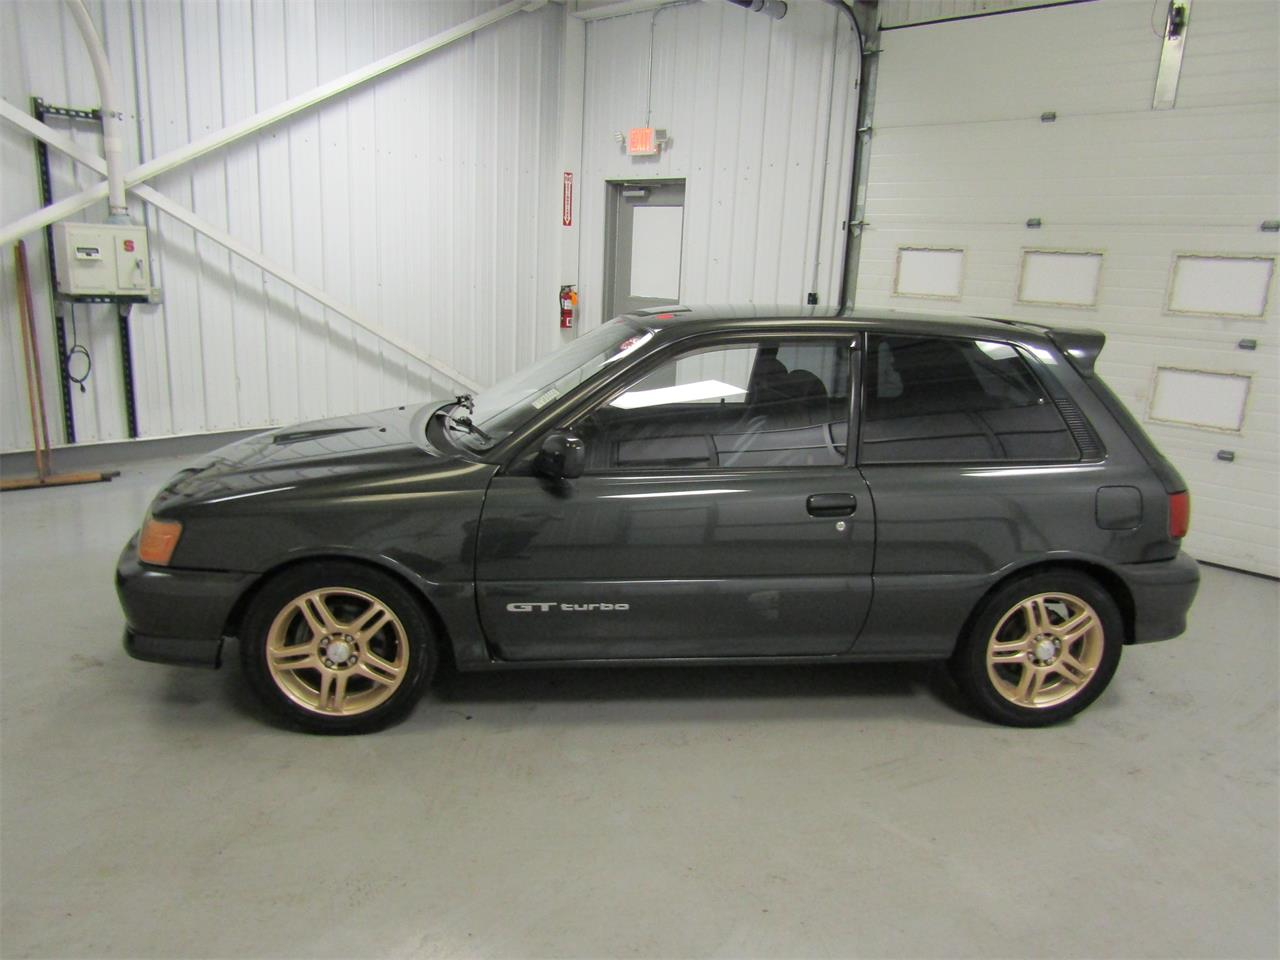 Large Picture of 1990 Starlet located in Virginia - $10,900.00 - MO5C